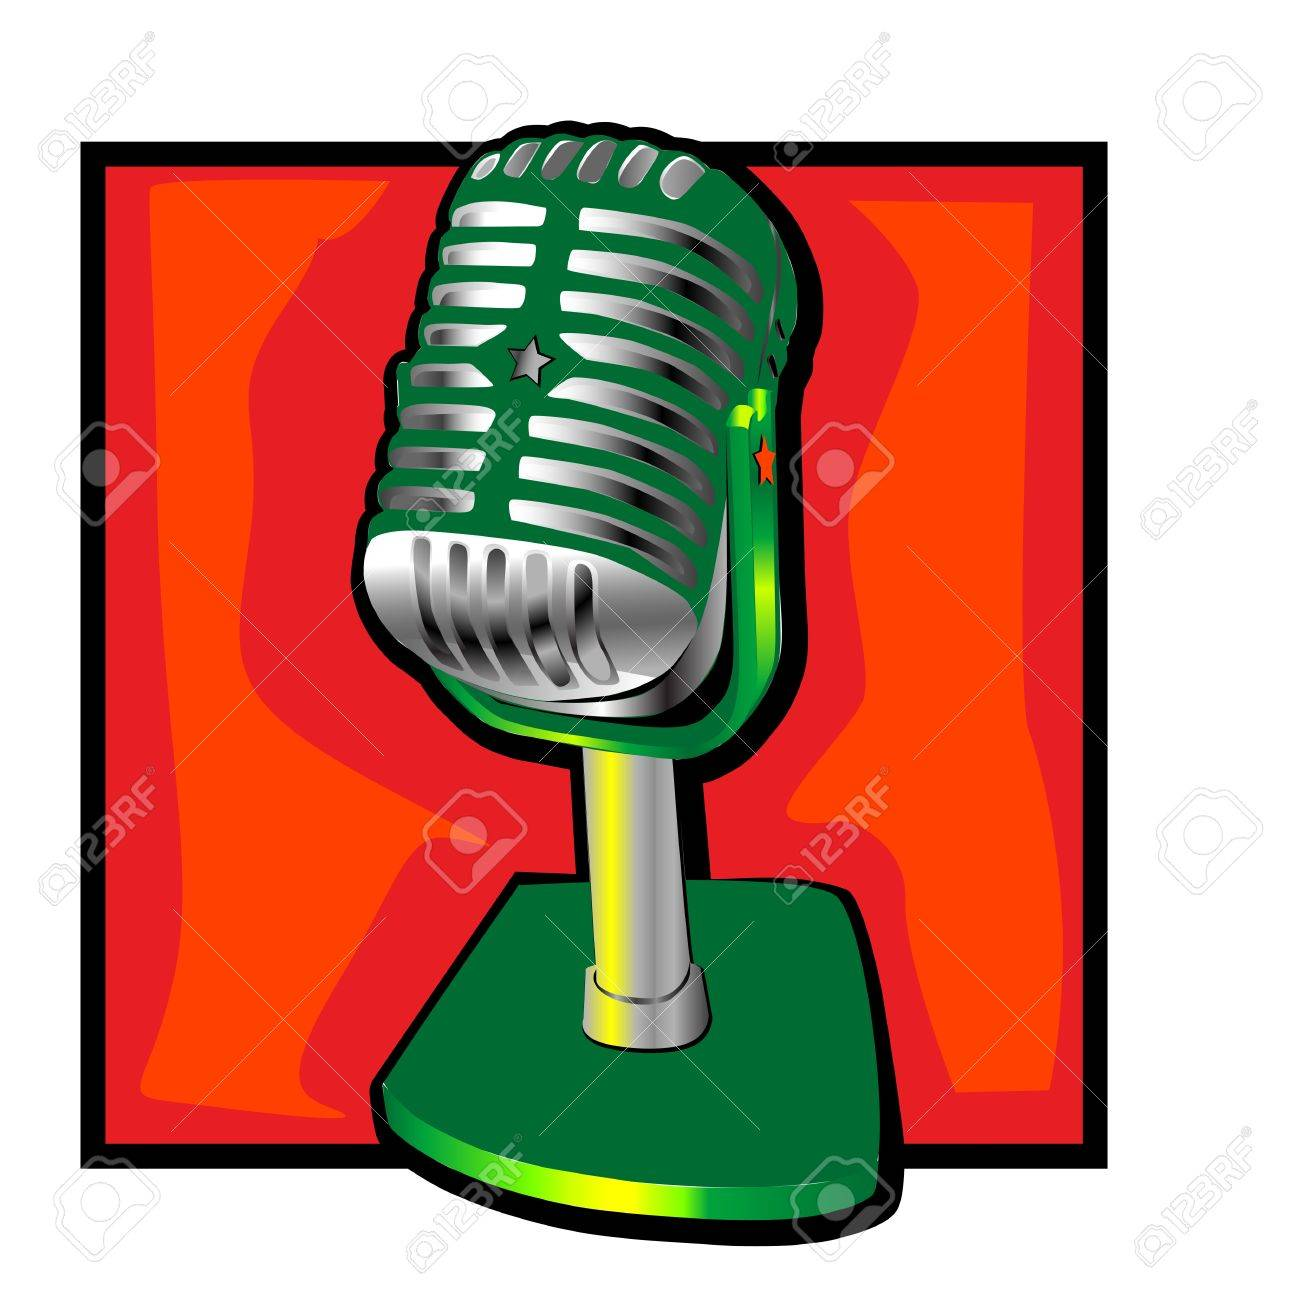 Retro Microphone Clip Art With A Decorative Star Royalty Free ...